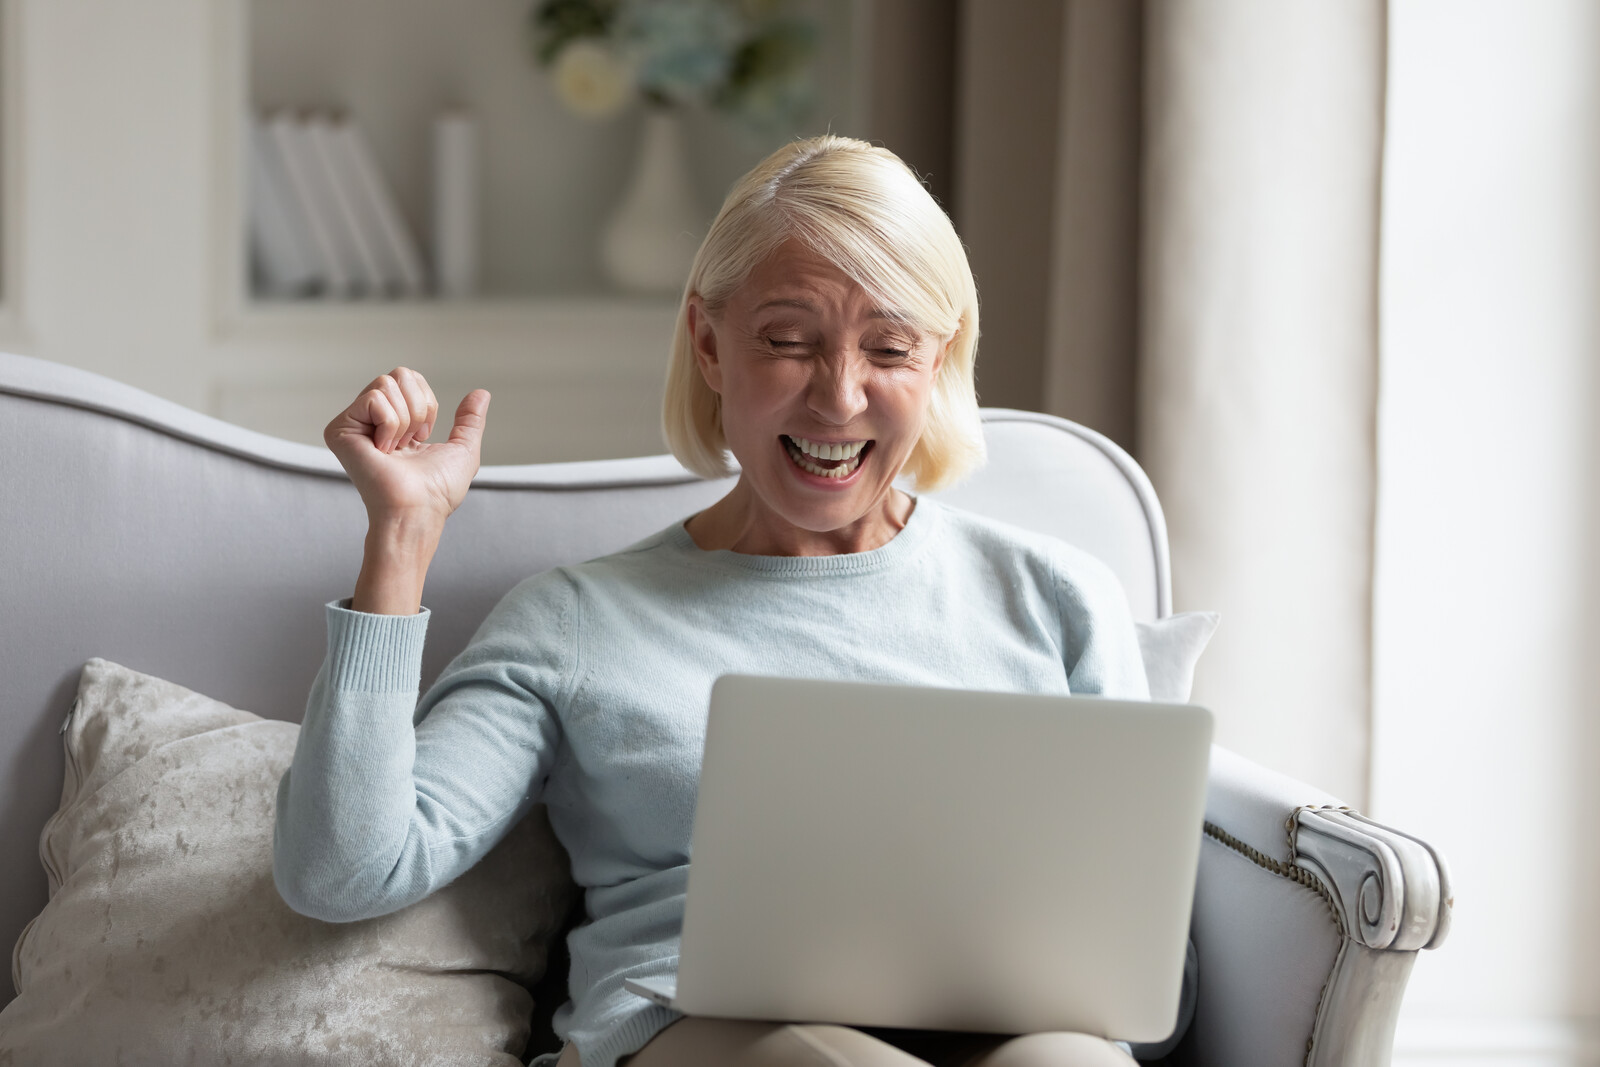 Senior woman on her couch with a lap top on her lap smiling doing fist pump in the air showing her happiness as if she won a gift card